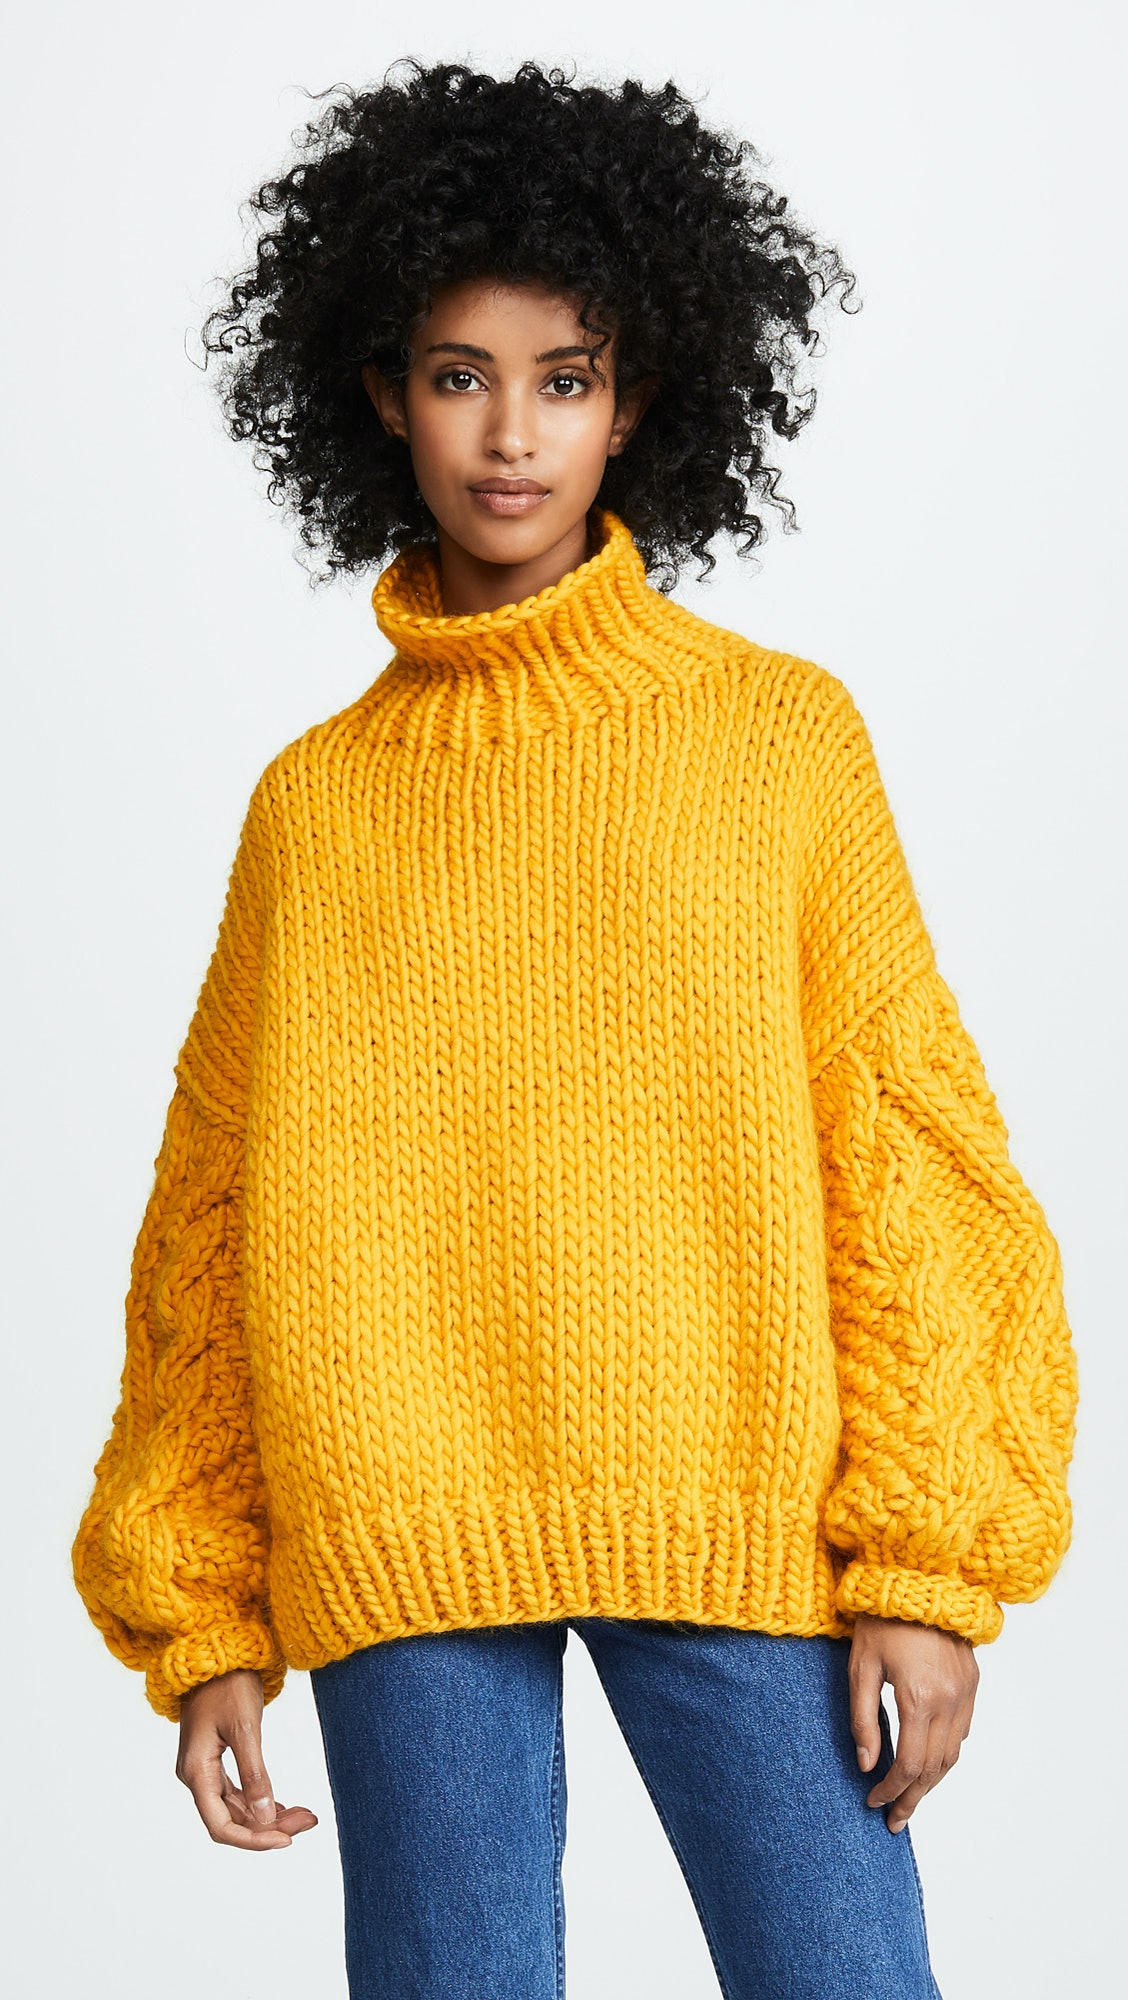 4cd4b8d3 How To Layer Sweaters, As Shown In Three Easy Outfits